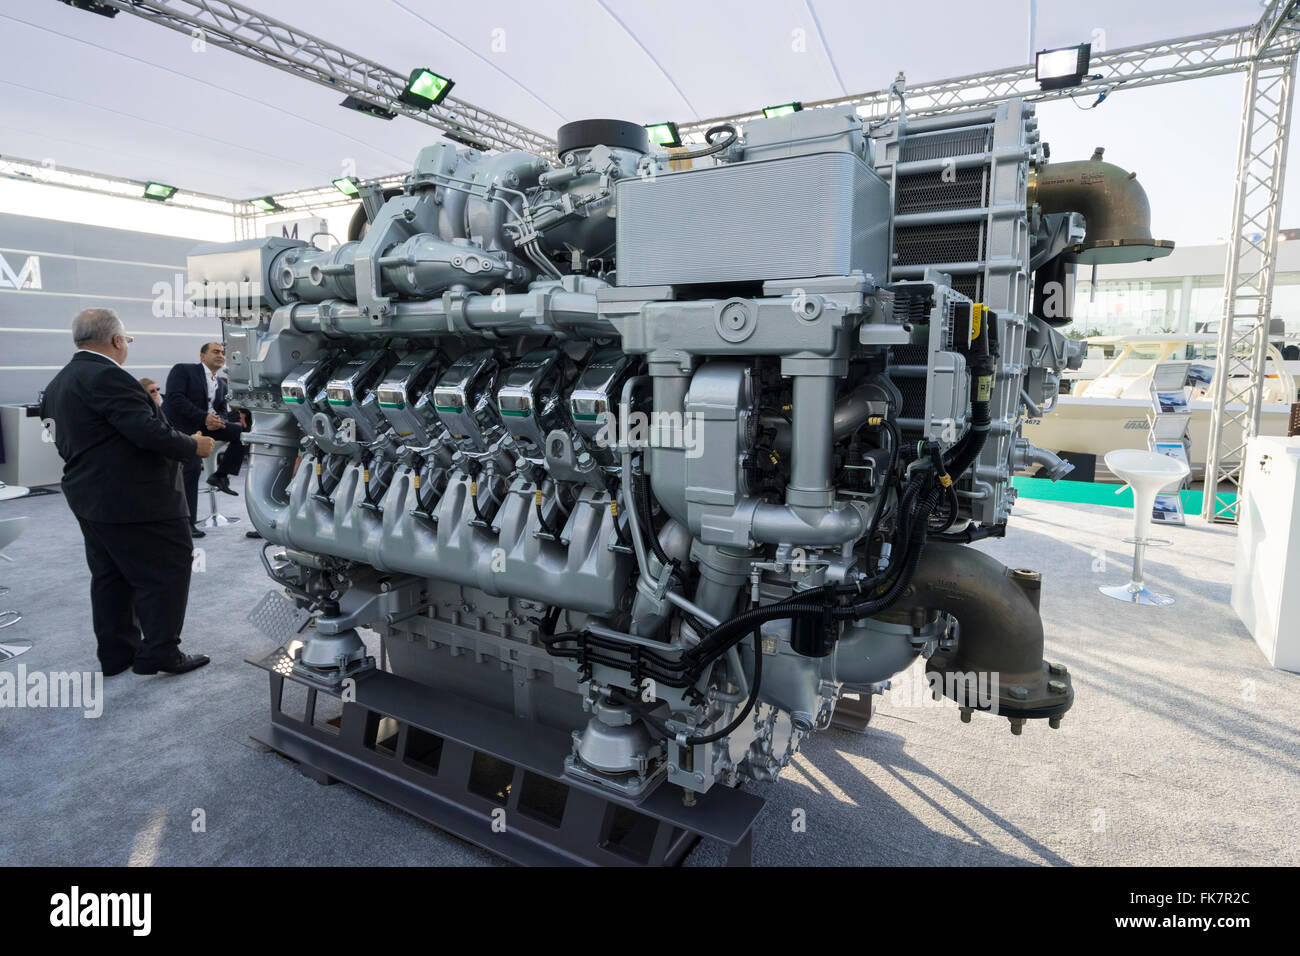 Litre Diesel Large 93 Litre Marine V12 Diesel Engine Manufactured By Mtu On